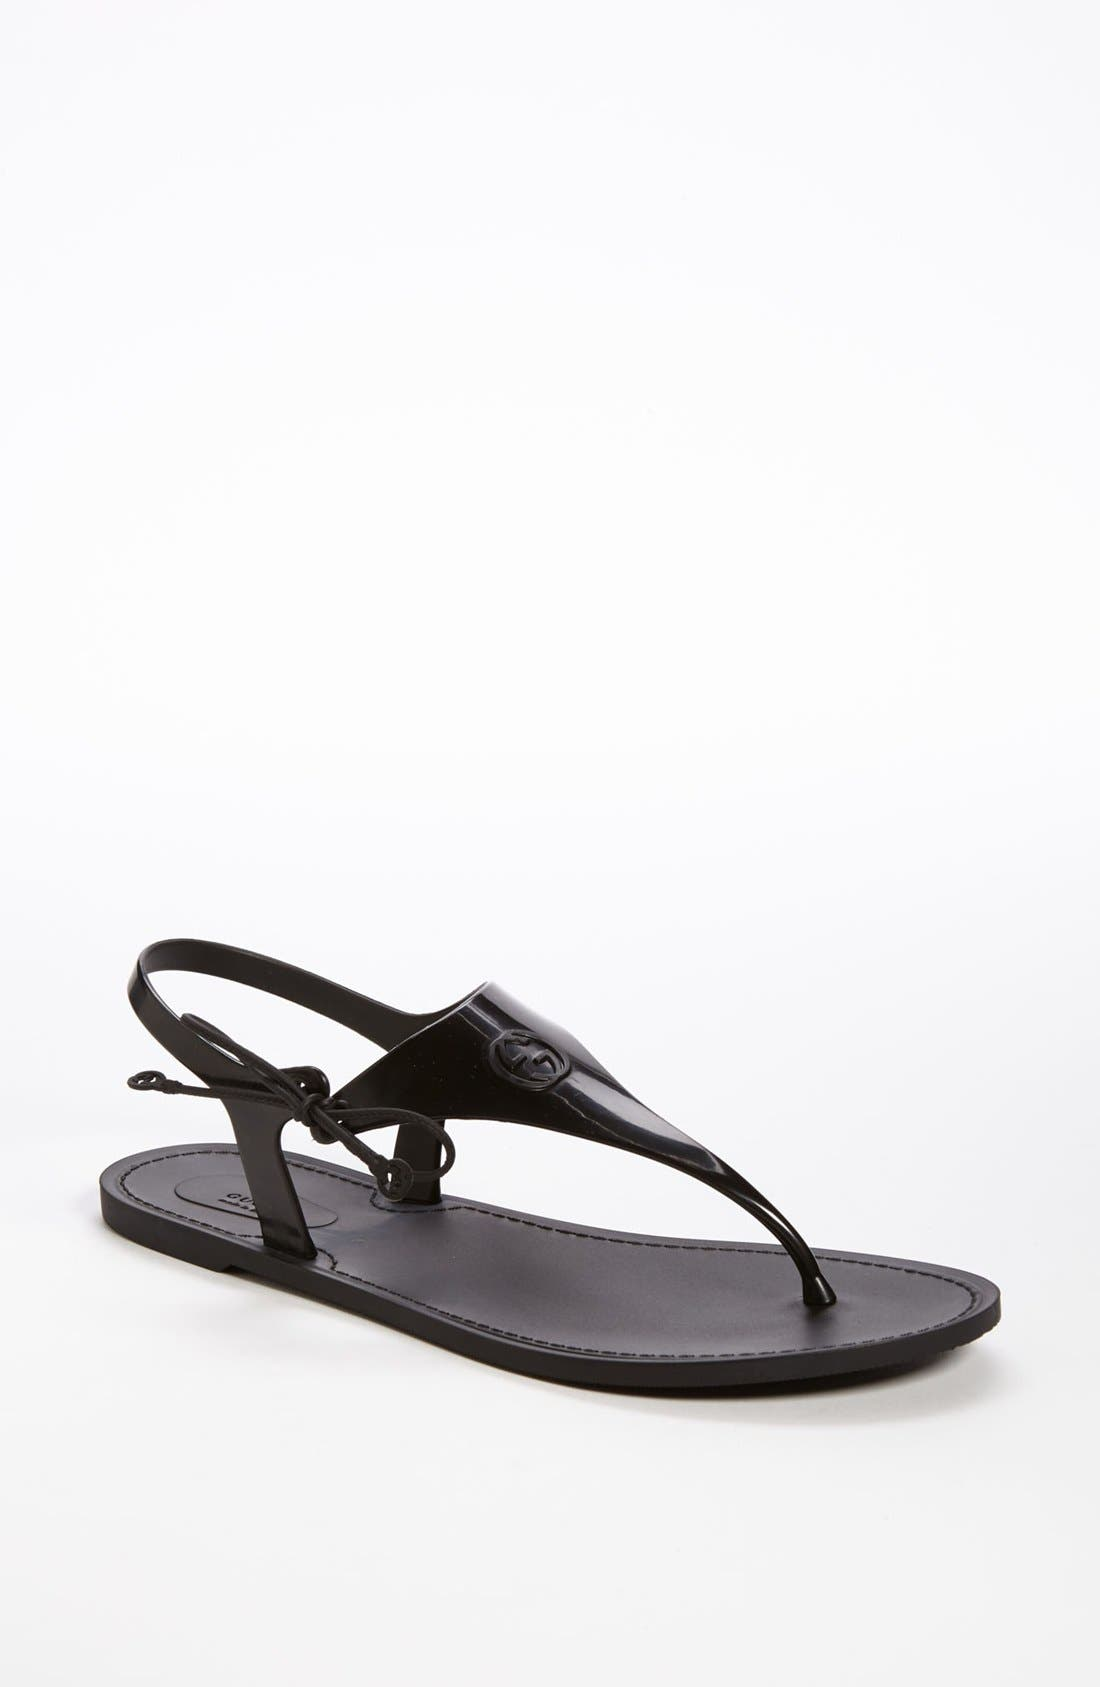 Alternate Image 1 Selected - Gucci 'Katina' Sandal